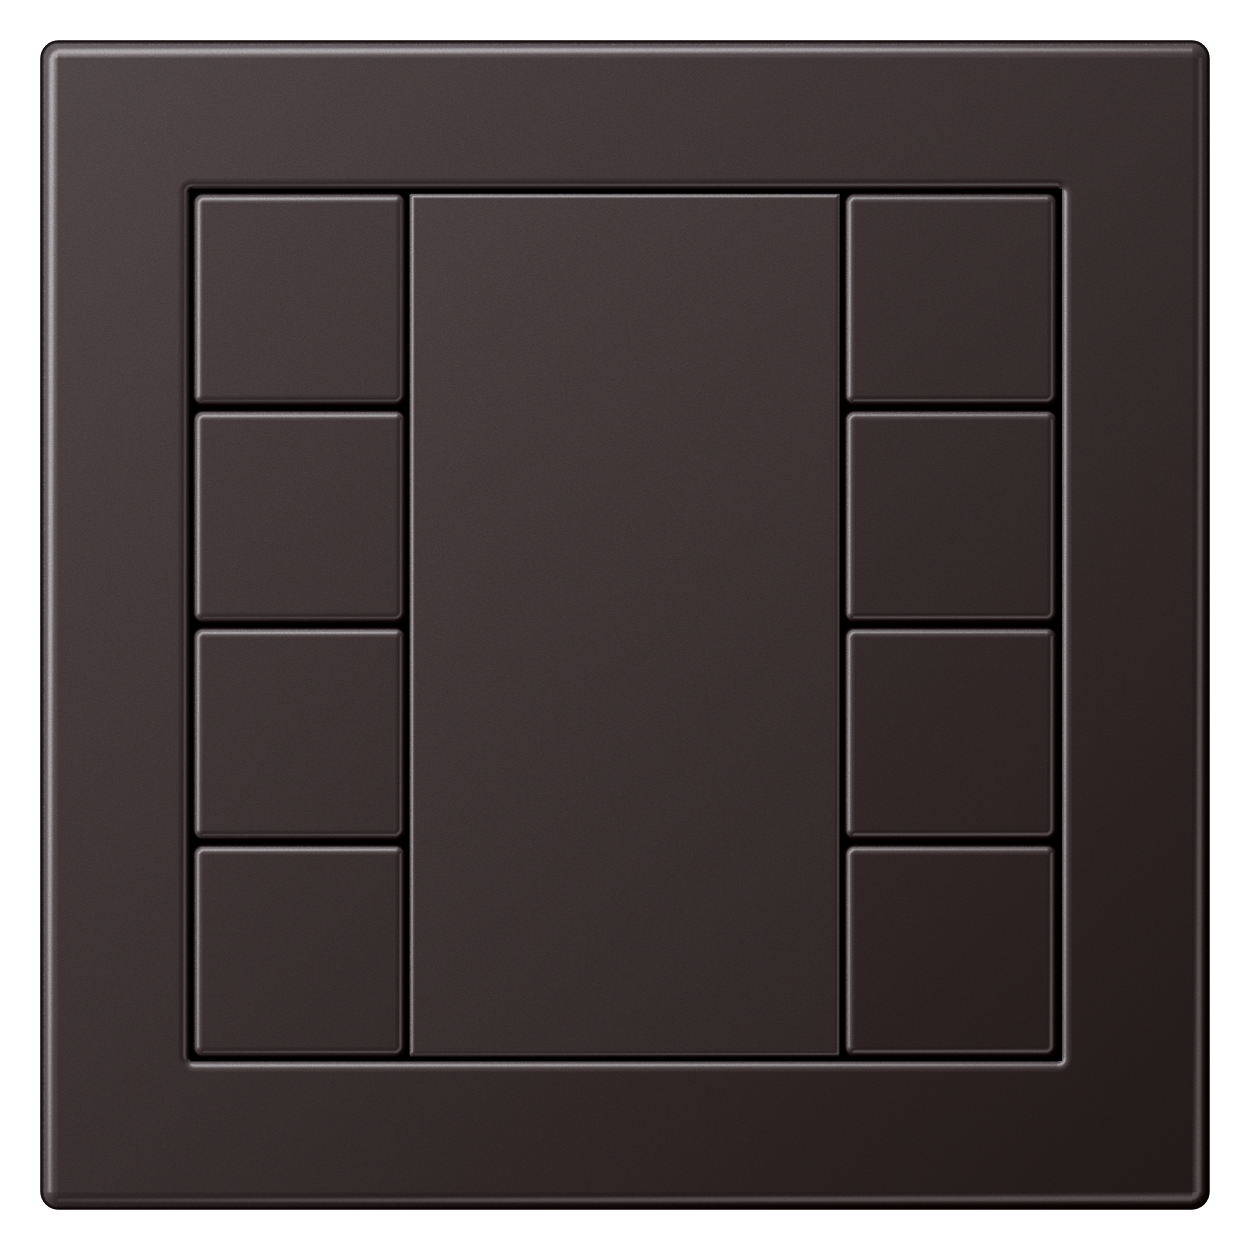 JUNG_LSDesign_aluminium-dark_F50_4button_dc